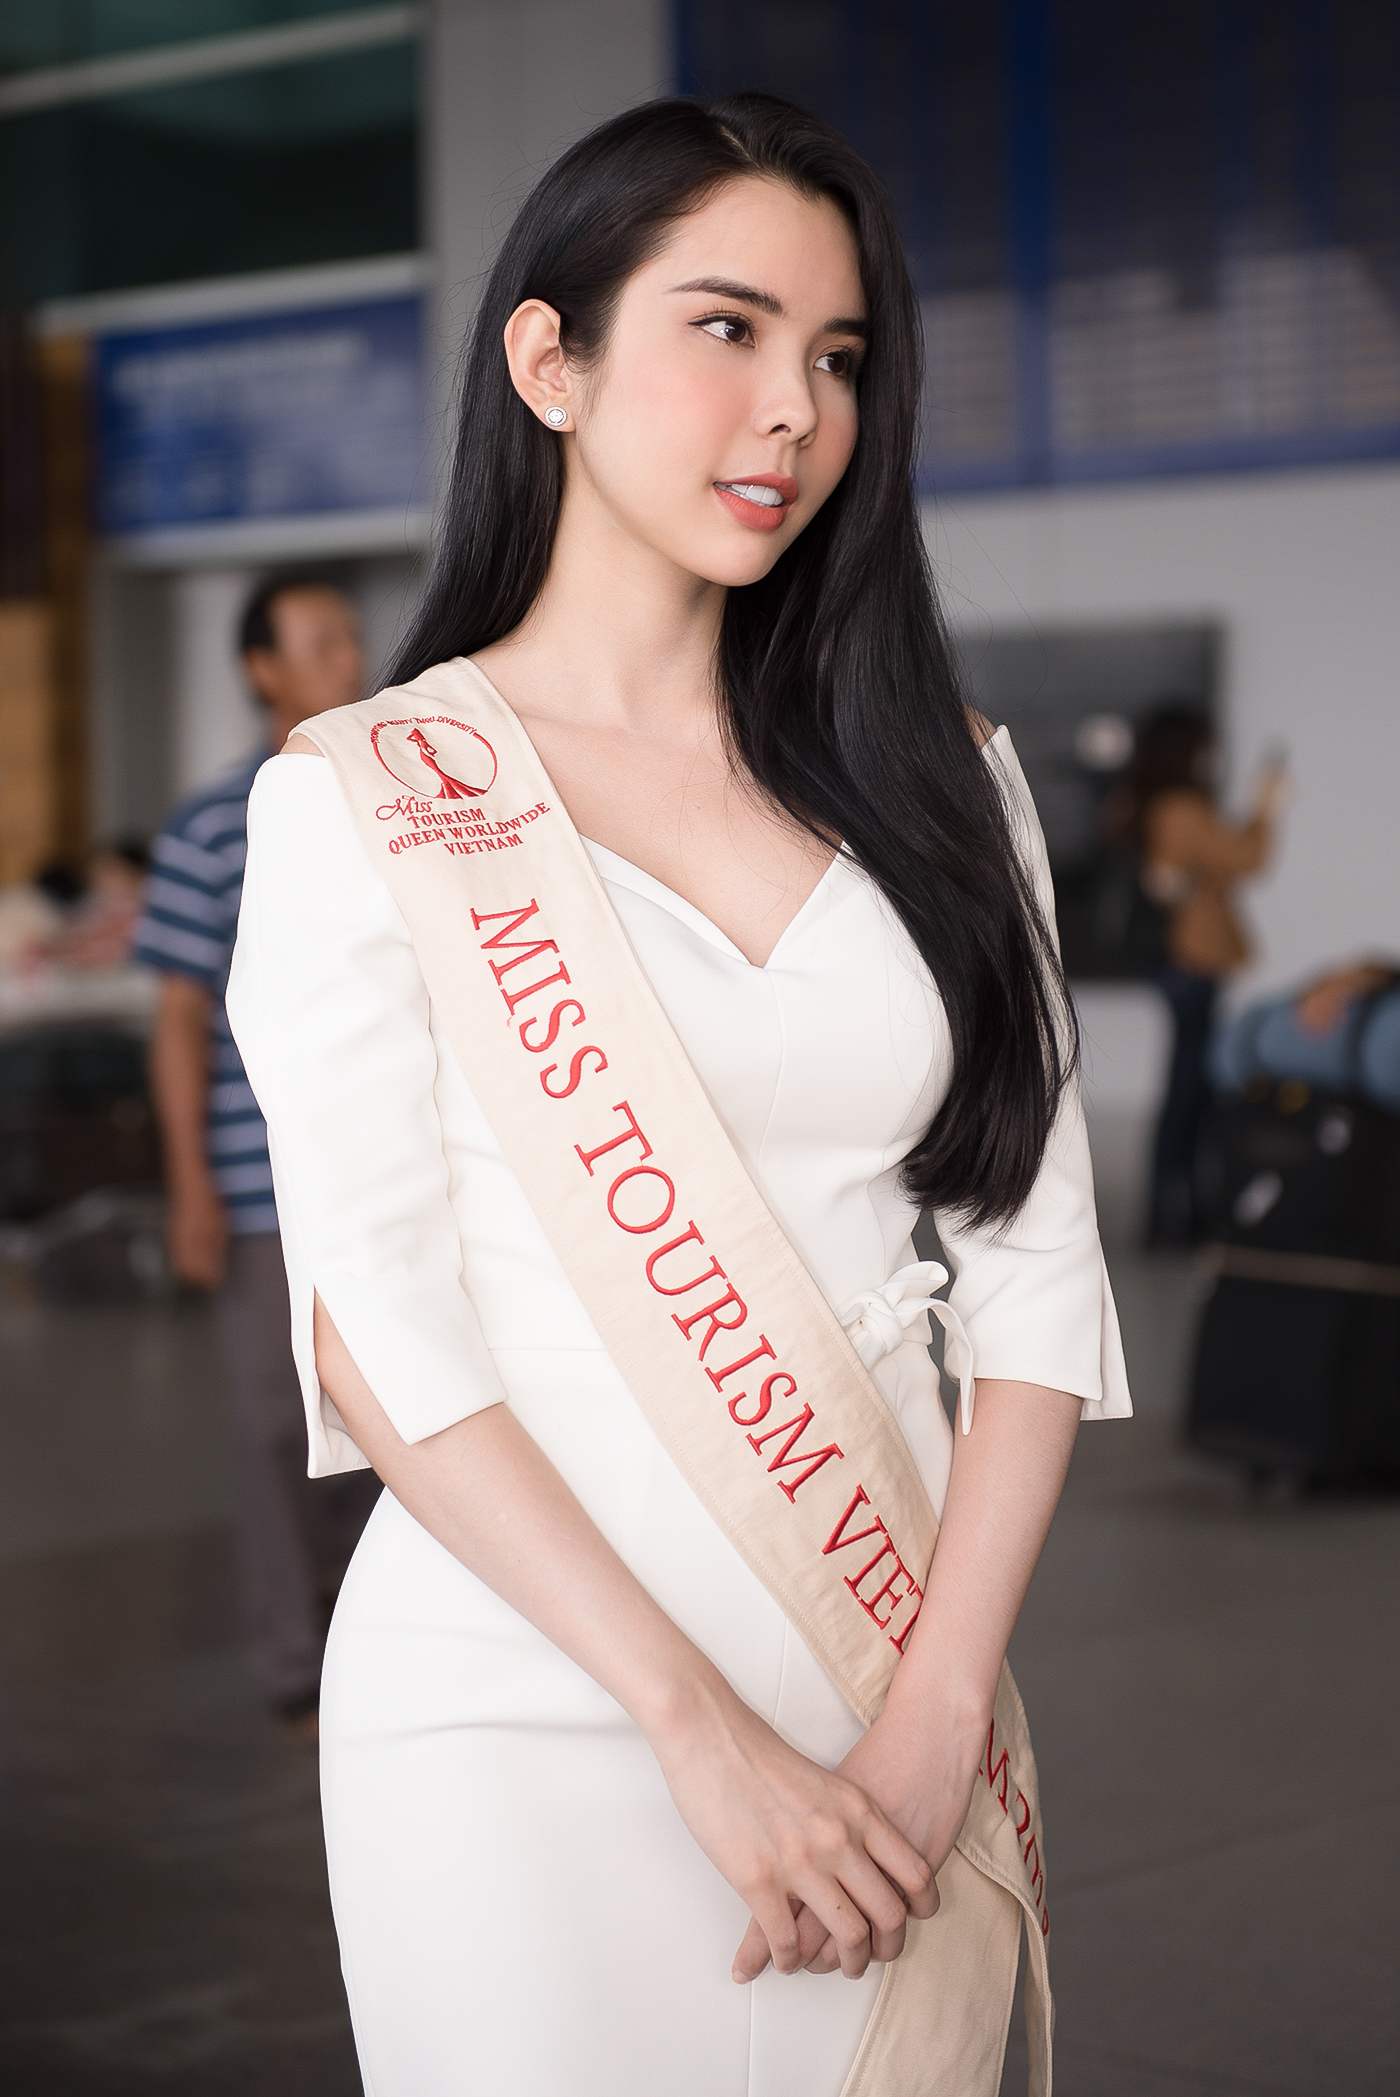 Lien Binh Phat tien Huynh Vy di thi Miss Tourism Queen Worldwide-Hinh-4